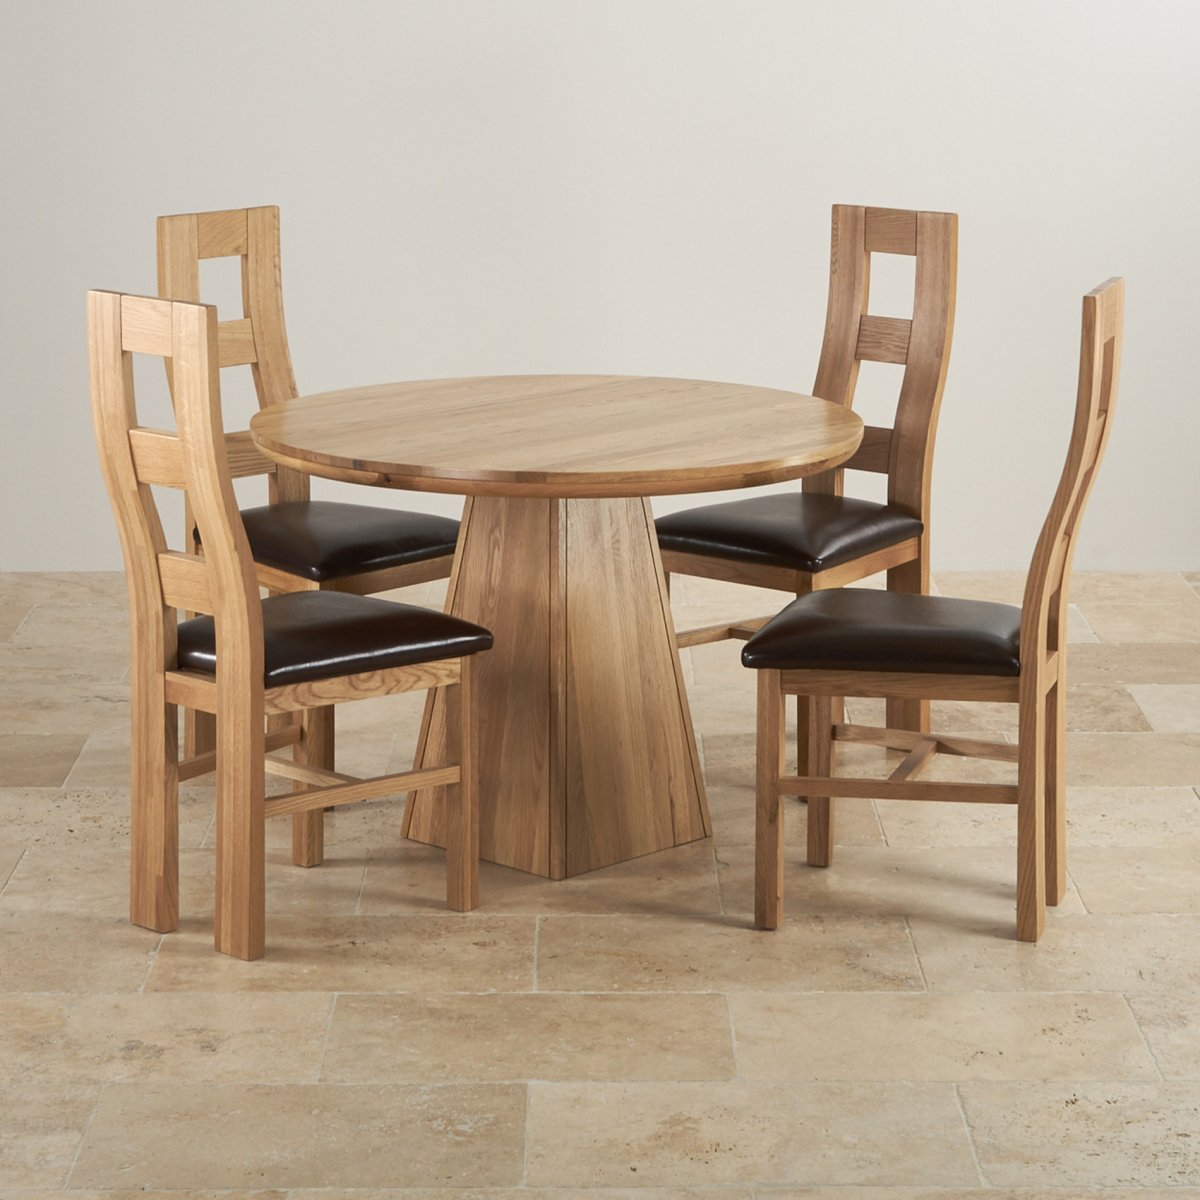 Dining Table And Chairs ~ Provence solid oak dining set ft quot table with chairs